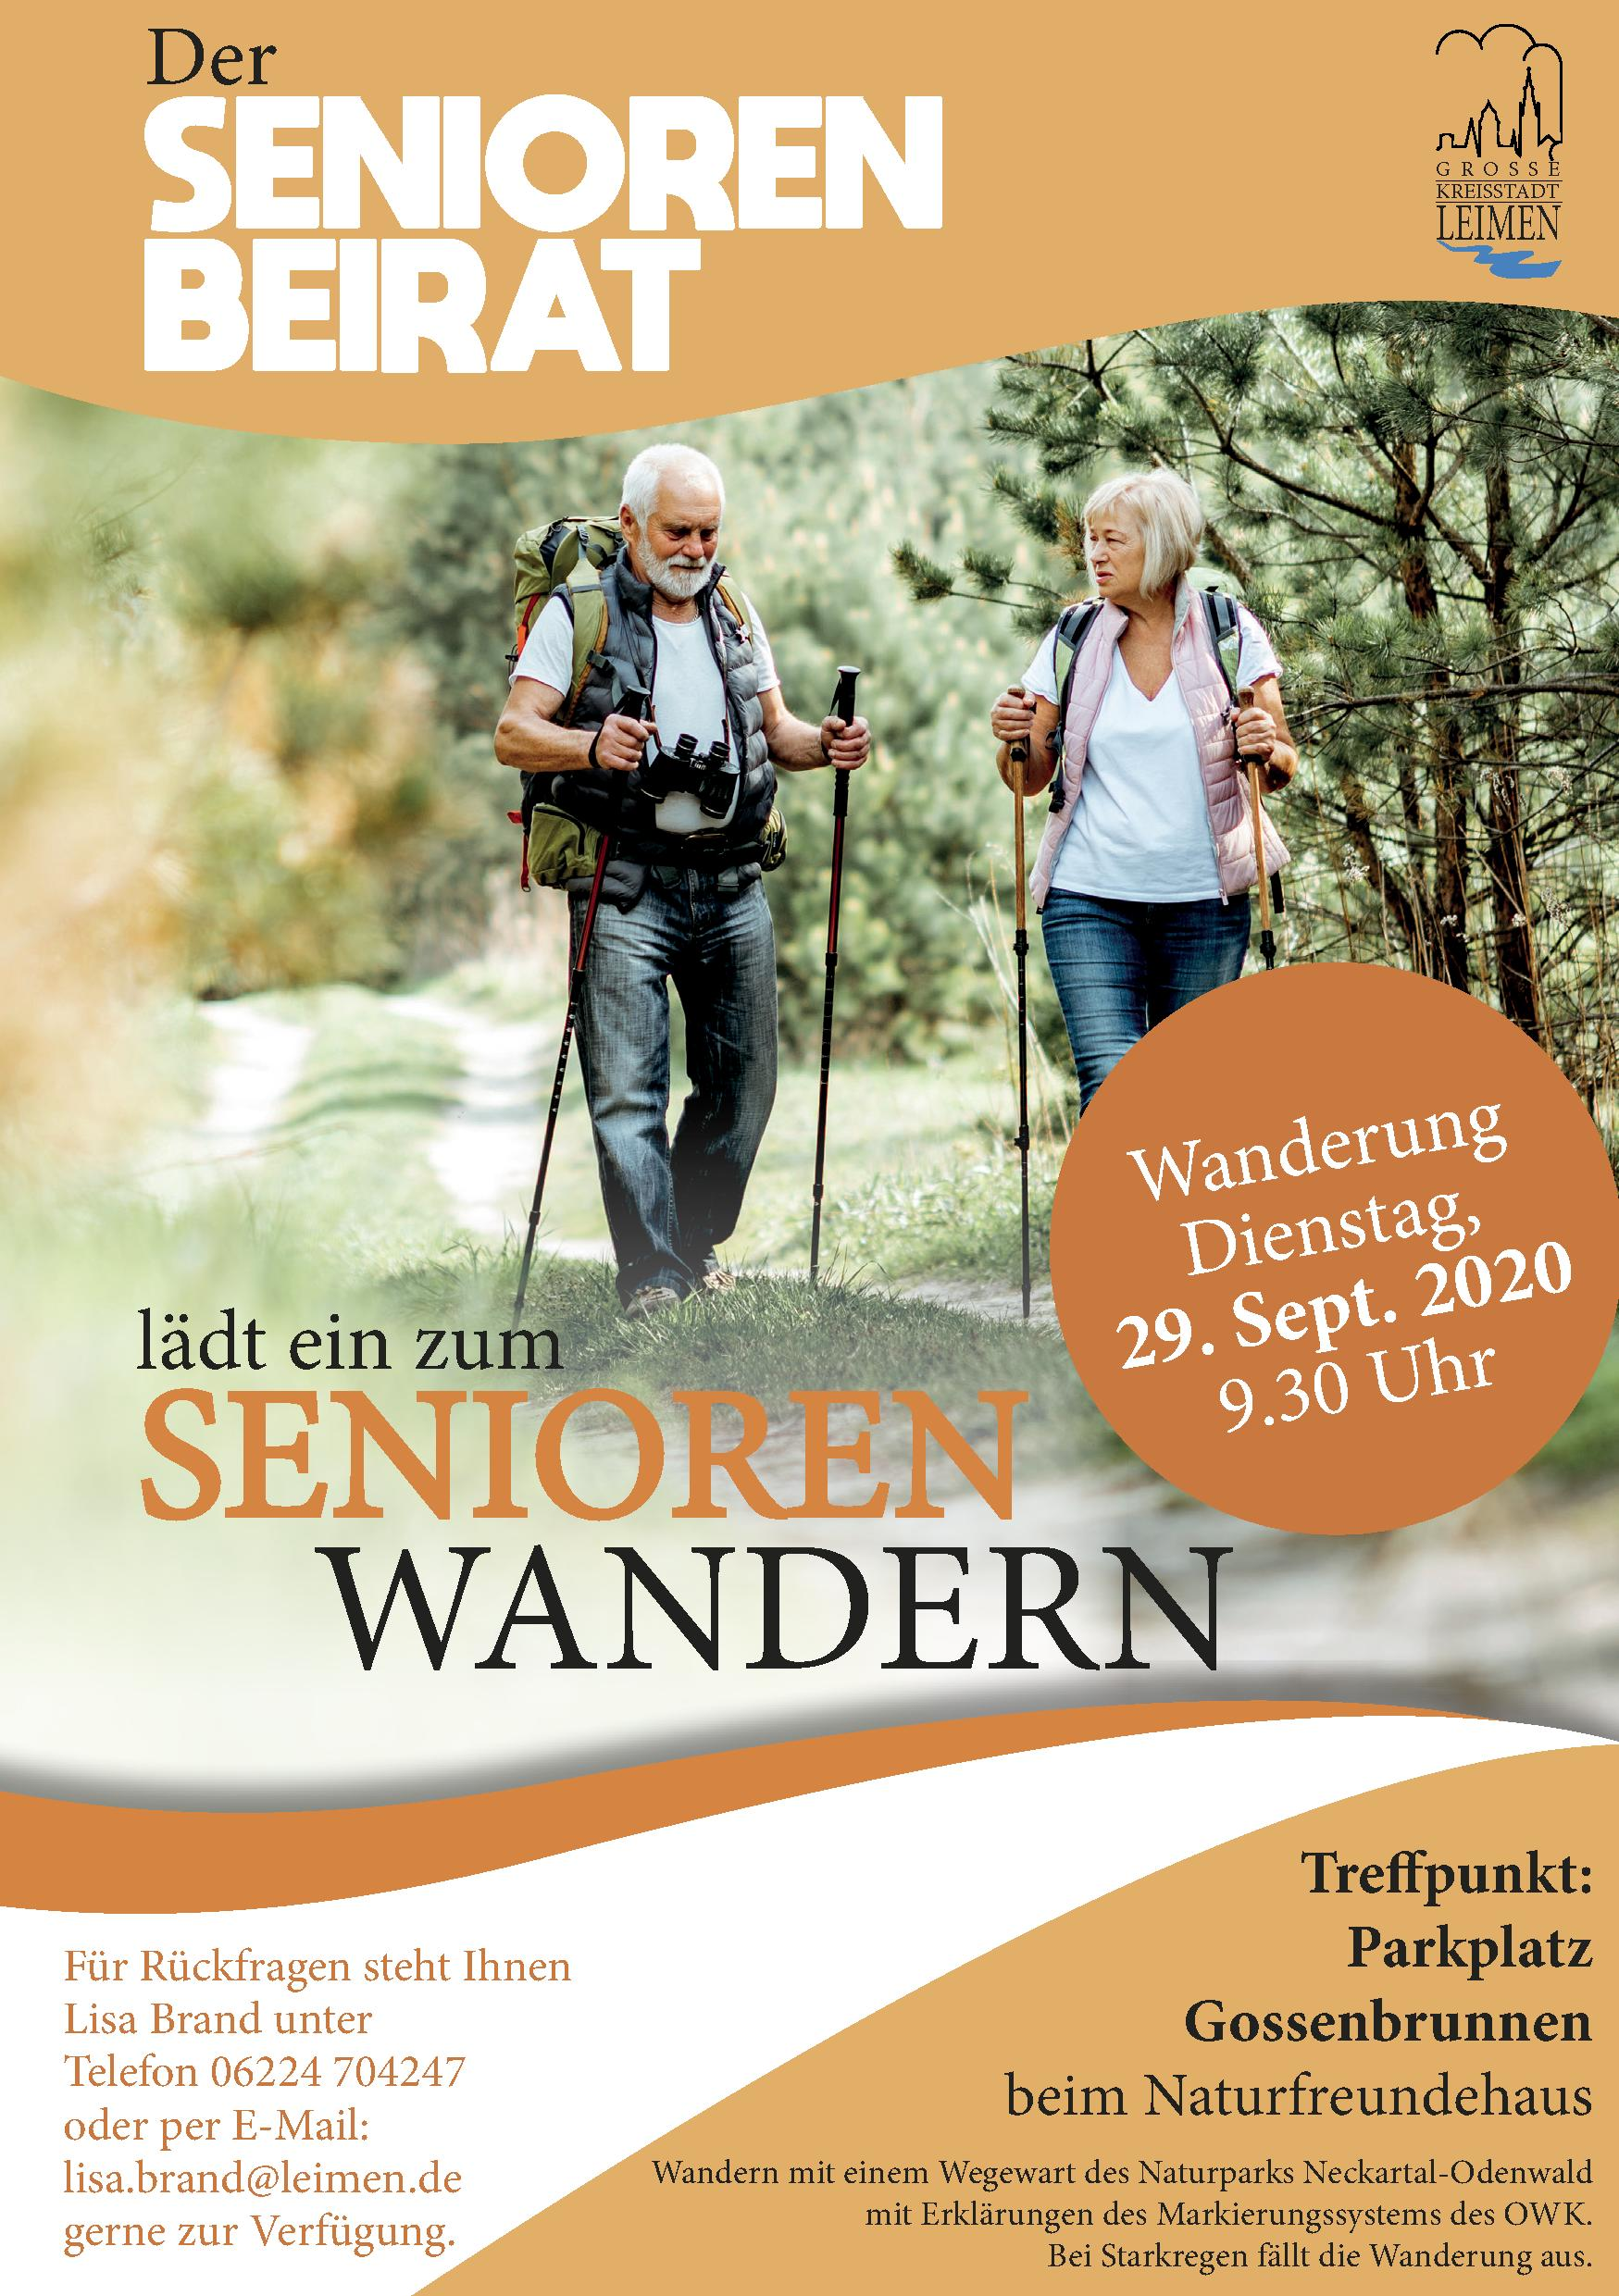 Seniorenwandern am 29. Sept. 2020